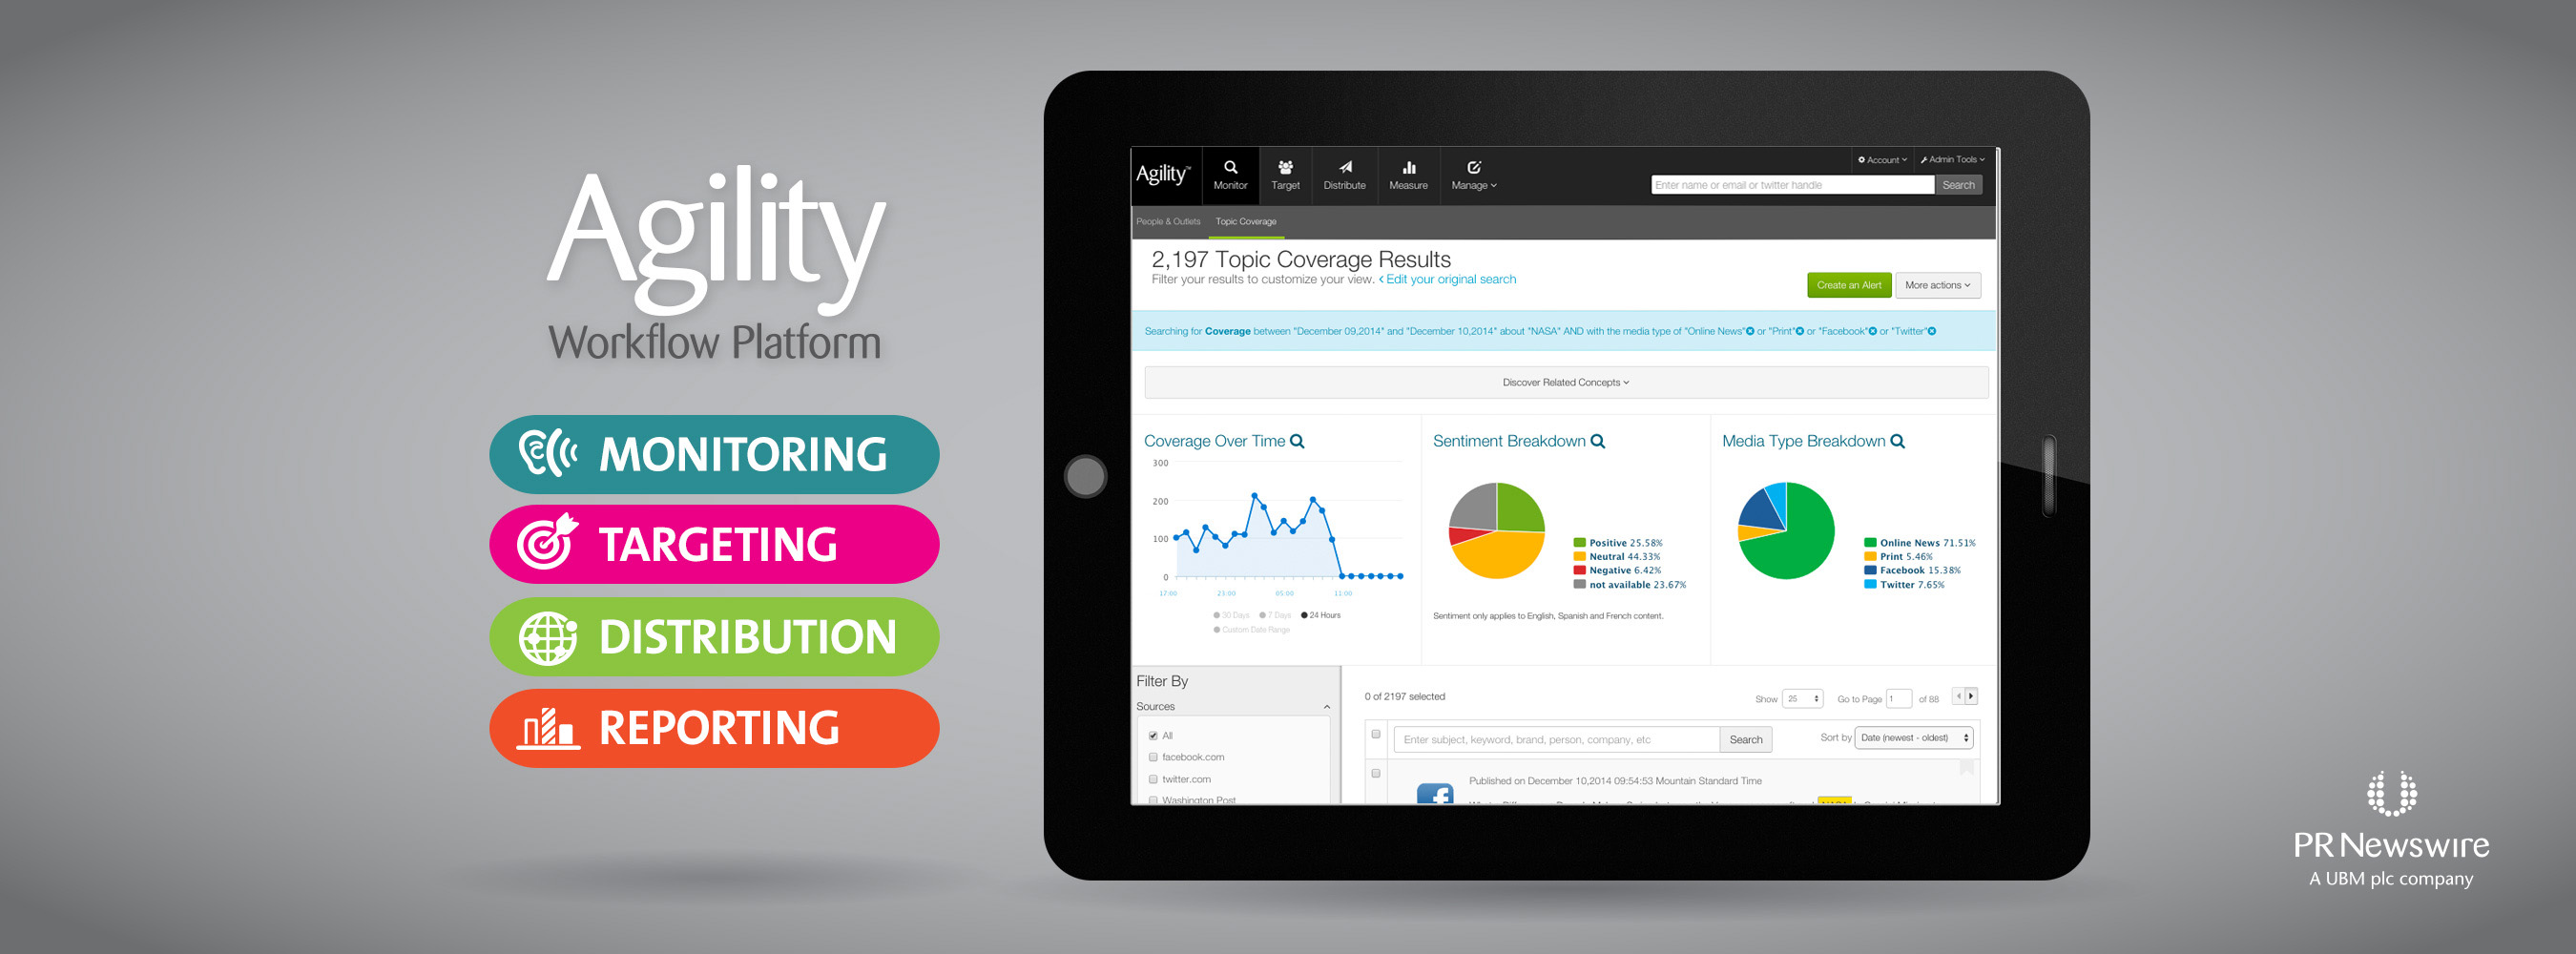 PR Newswire Strengthens Agility Platform With Monitoring And Targeting Enhancements